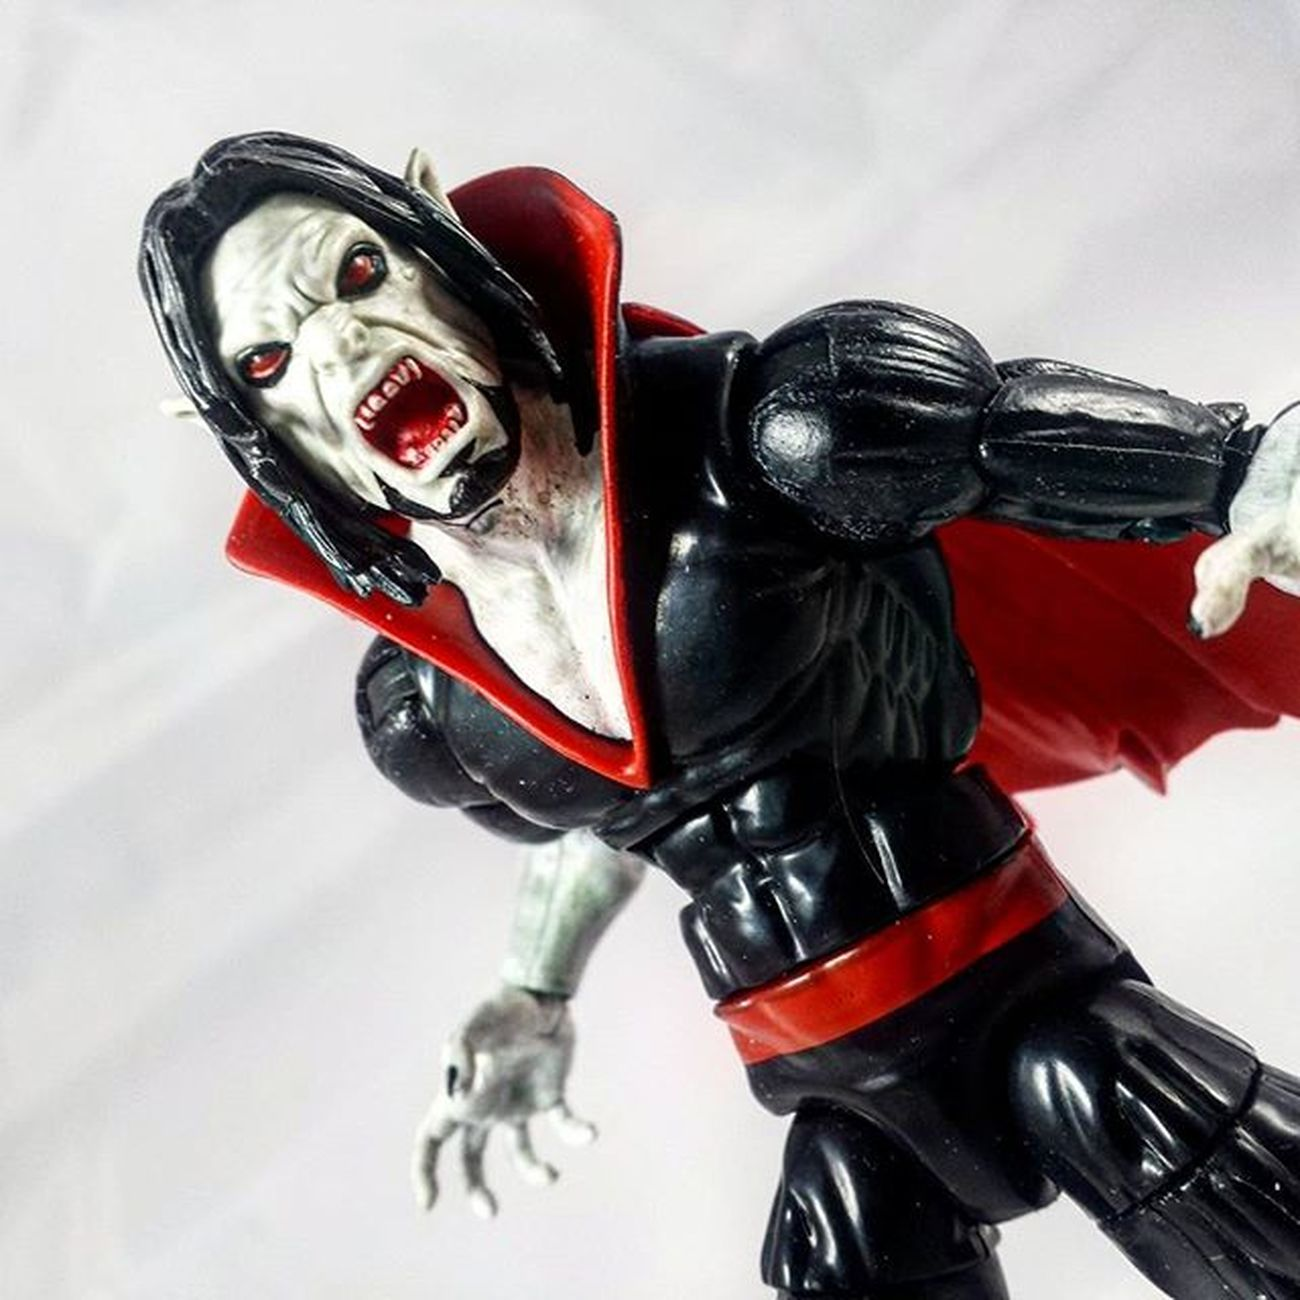 Morbius Morbius Thelivingvampire Marvel Marvellegends Marvelcomics Toys Toyphotography Toypizza Toysarehellasick Toycollector Toycommunity Toycollection Thefigureverse Ata_dreadnoughts ATA_MARVEL ACBA Acbafam Articulatedcomicbookart Spiderman